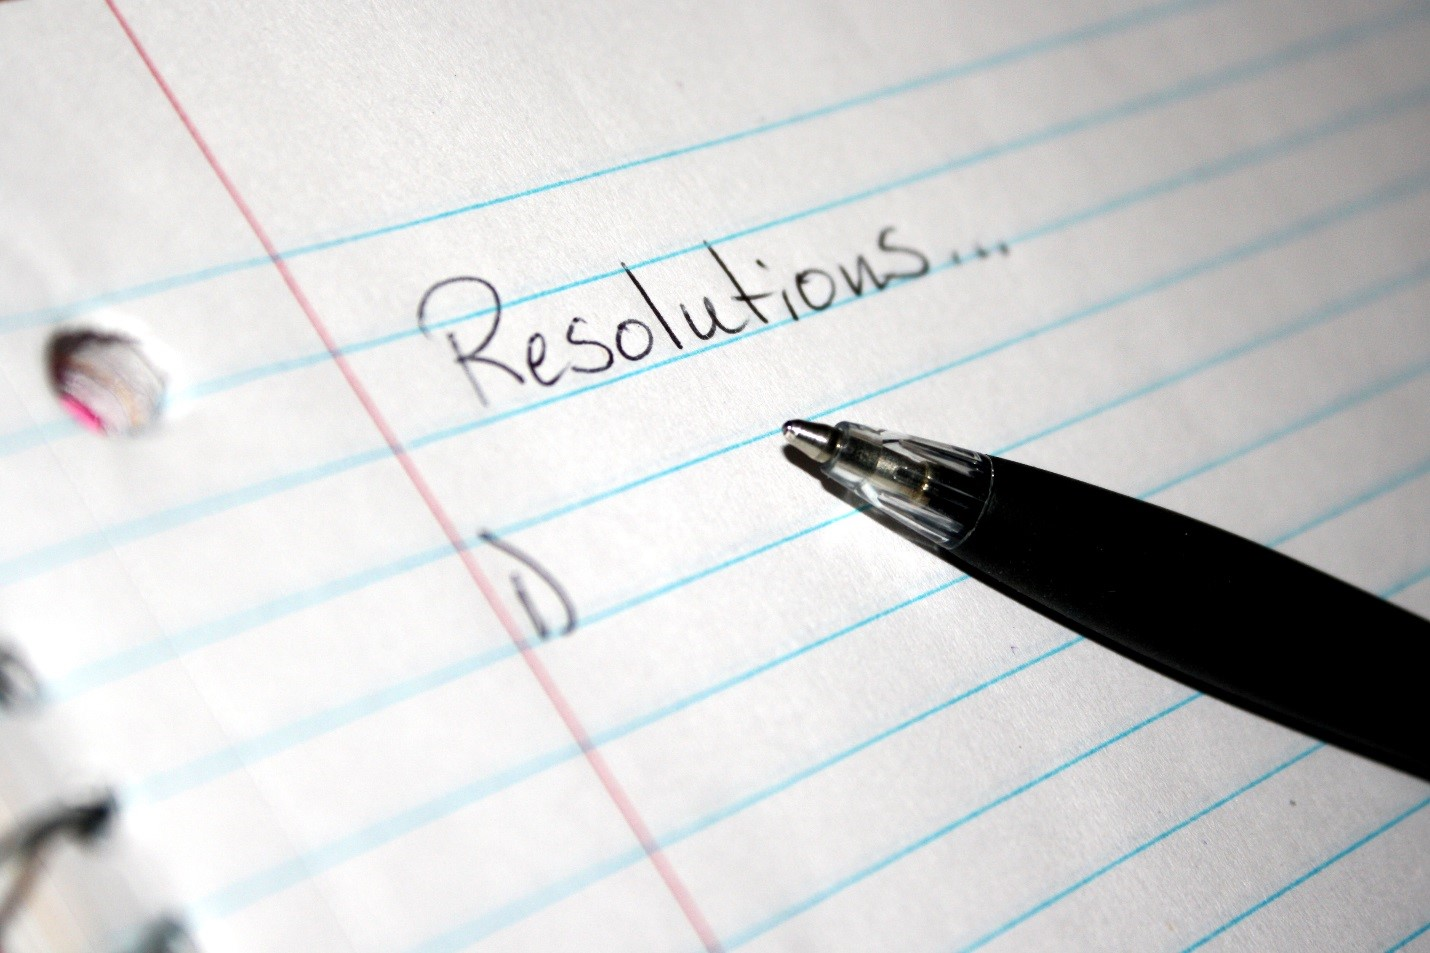 blank resolutions list on a note book page